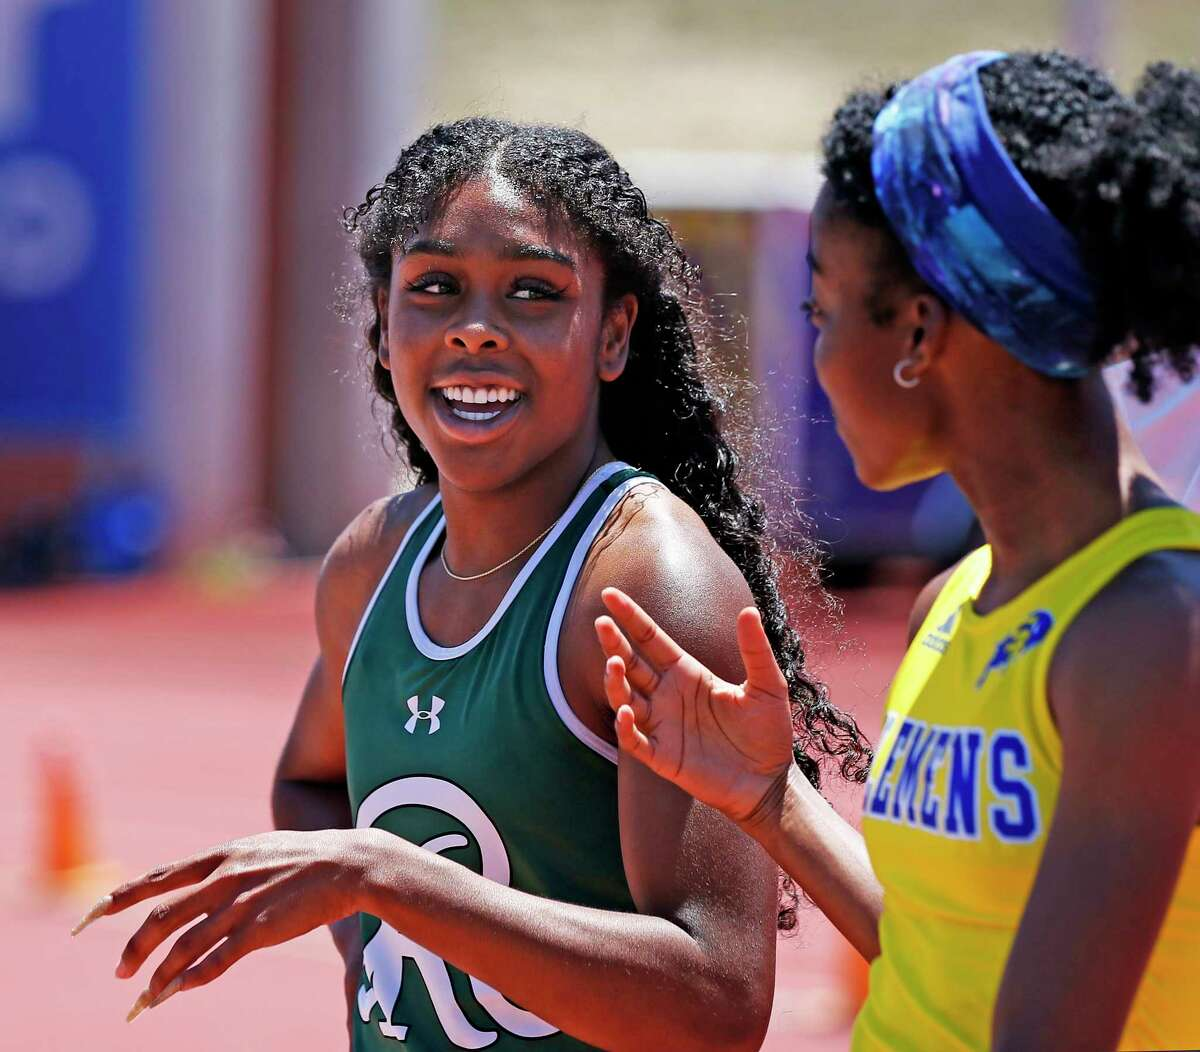 Reagan Jasmine Montgomery is all smiles as she talks with Saniya Friendly,Clements. Jasmine just won the 100 meter dash 6A. Region IV-6A/5A at Heroes Stadium on Saturday, April 24, 2021